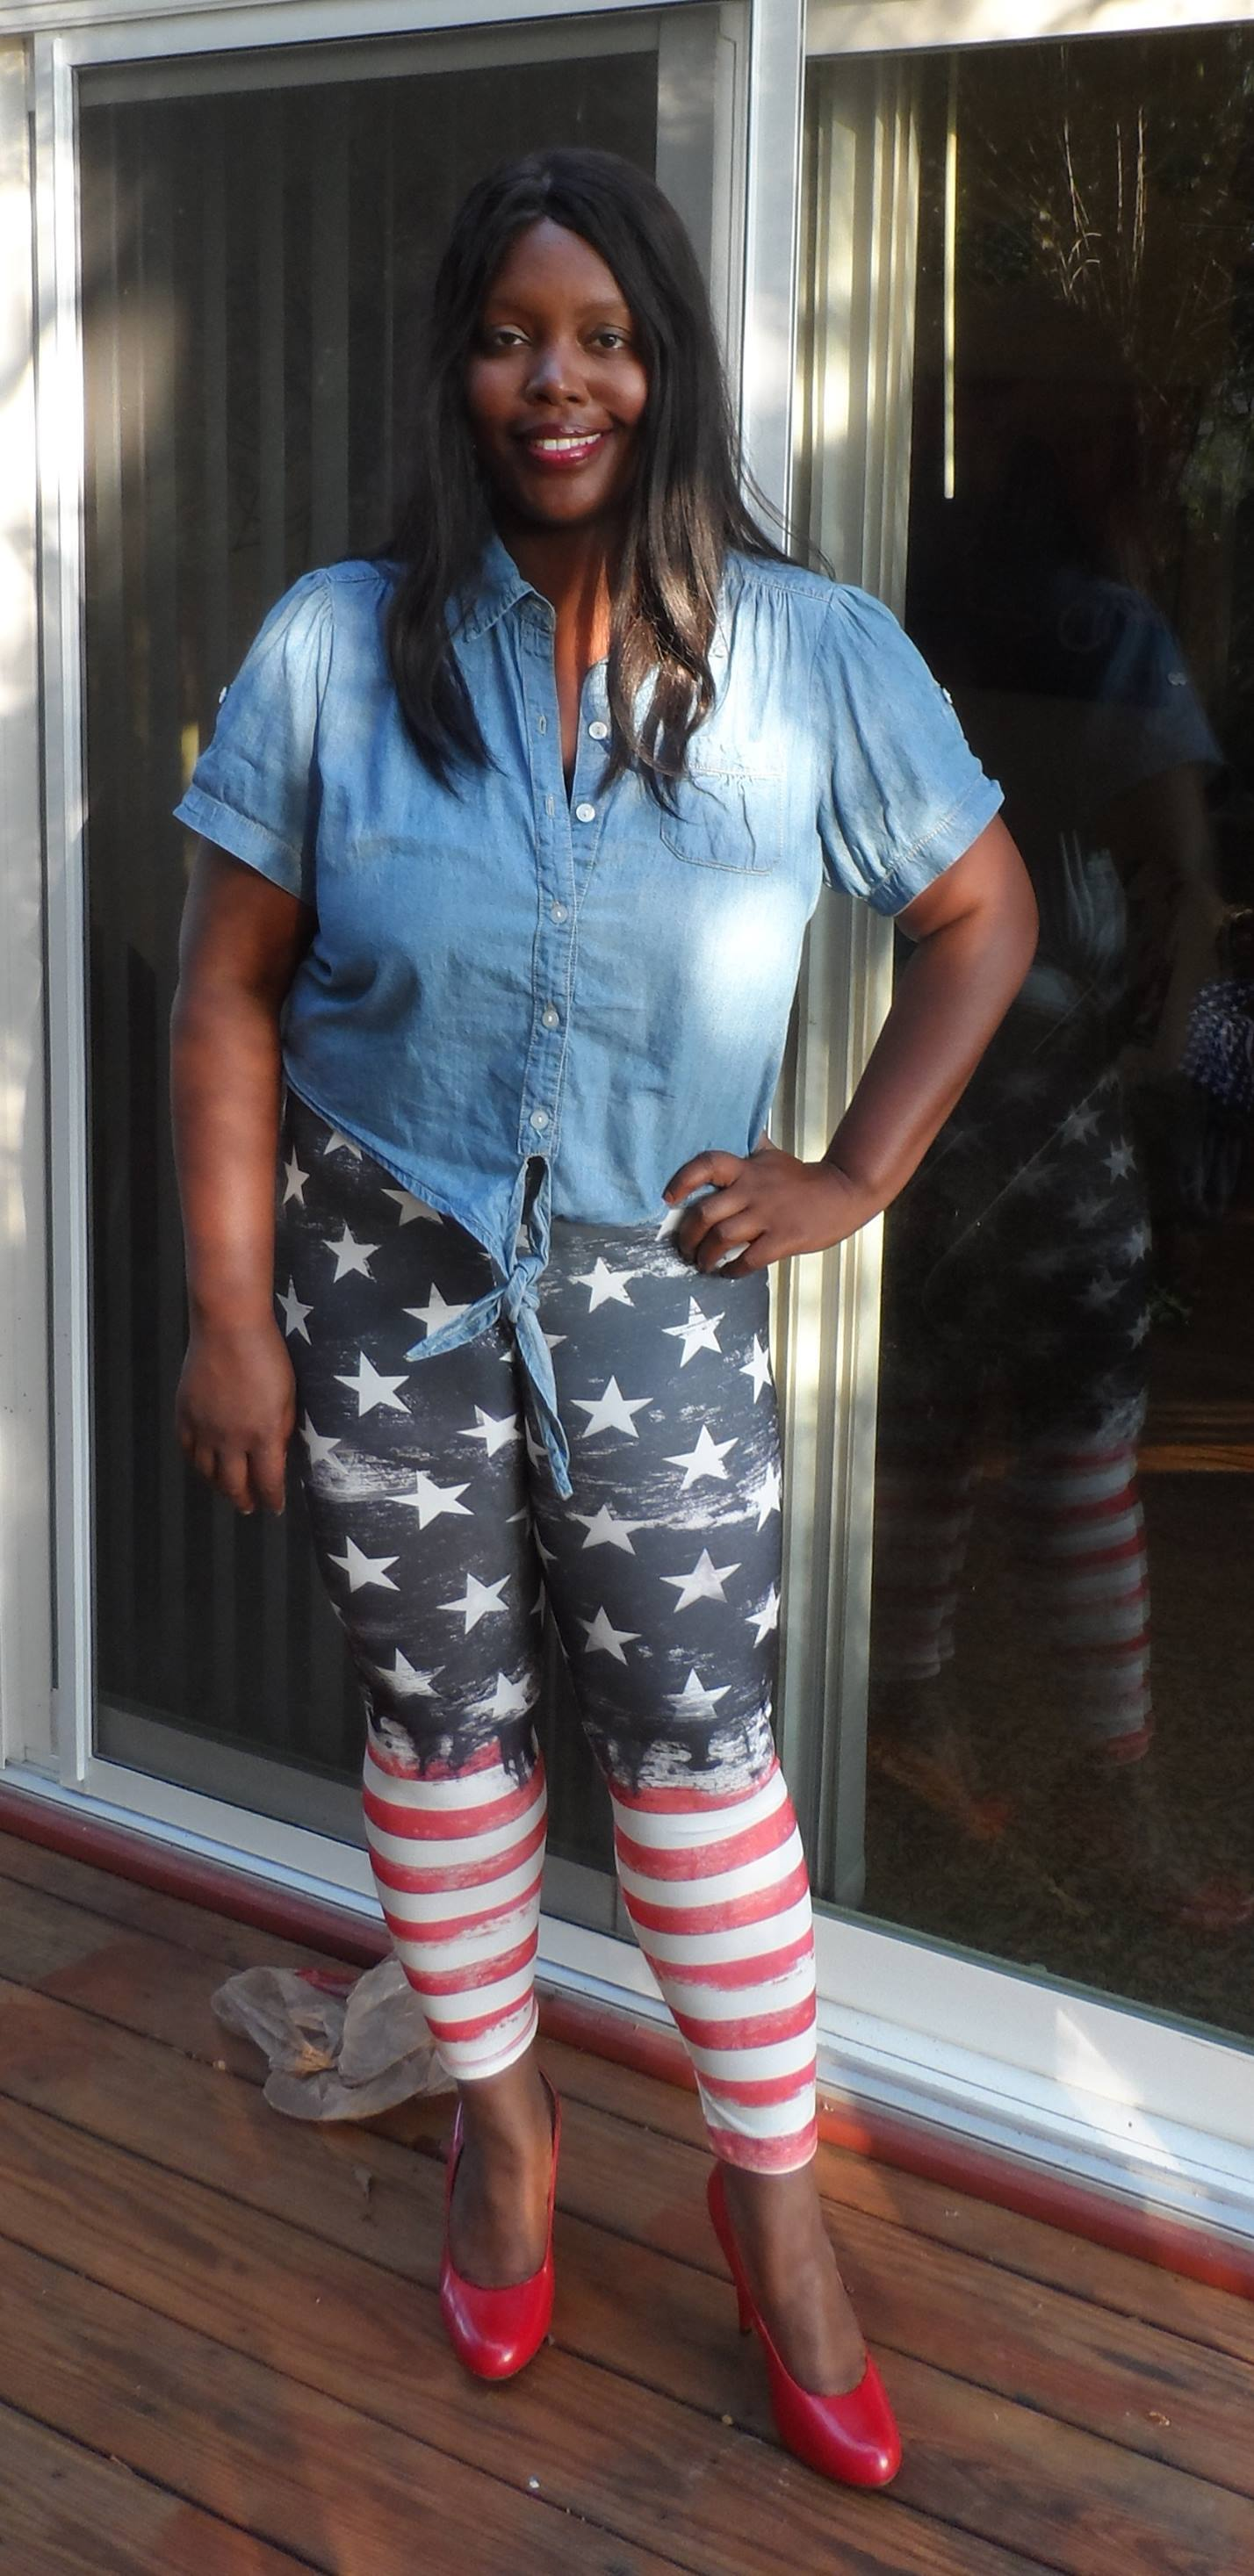 1049149_10151750737447464_134089909_o 18 Chic 4th of July Outfits For Plus Size Women 2018